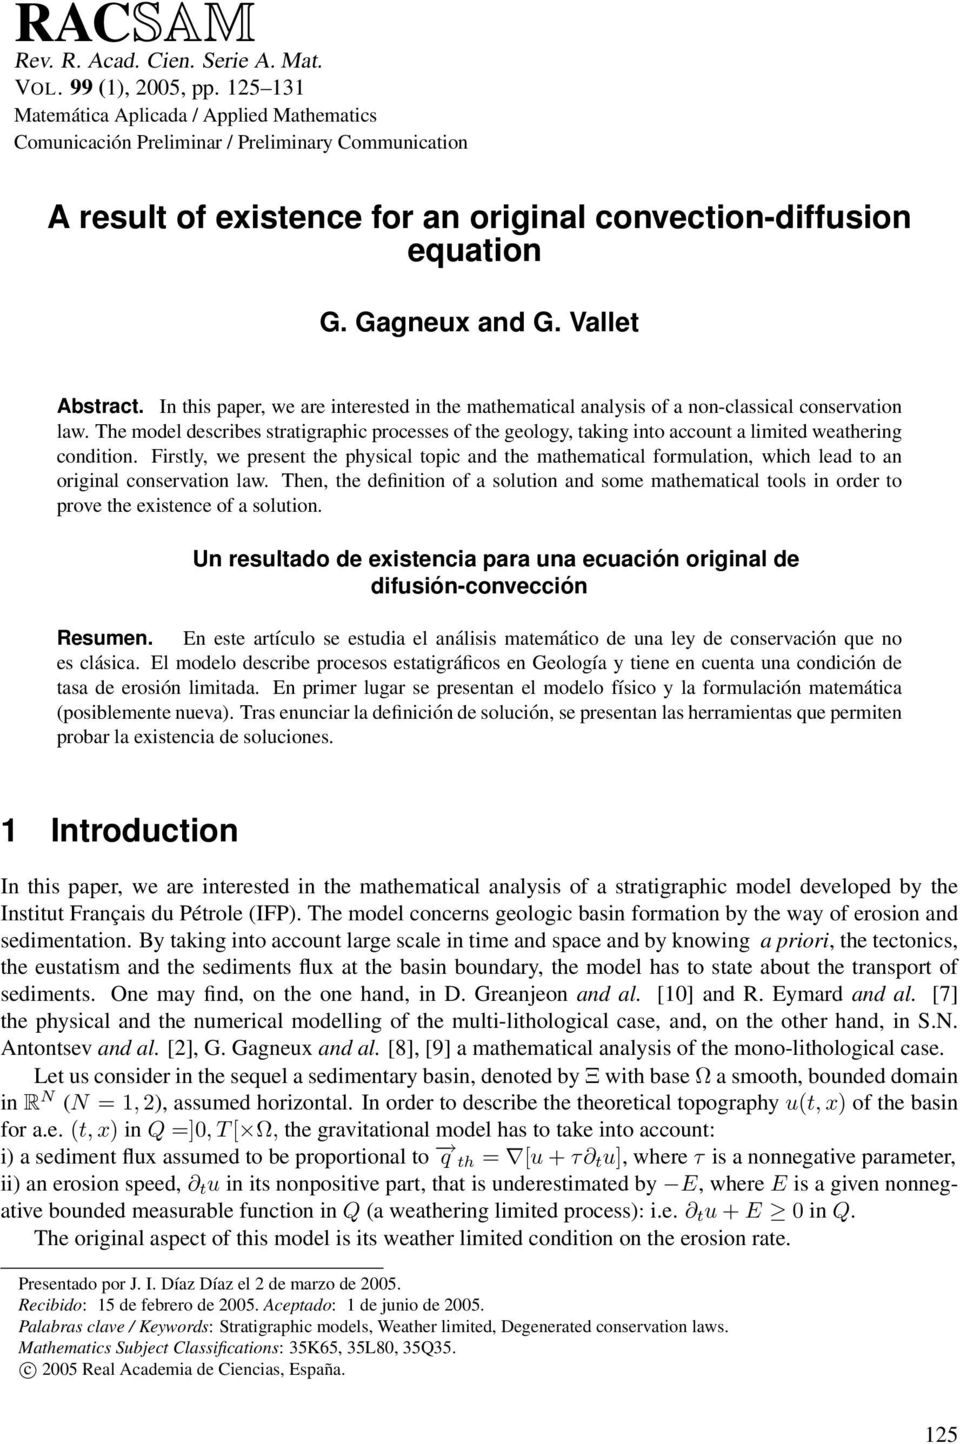 In tis paper, we are interested in te matematical analysis of a non-classical conservation law.